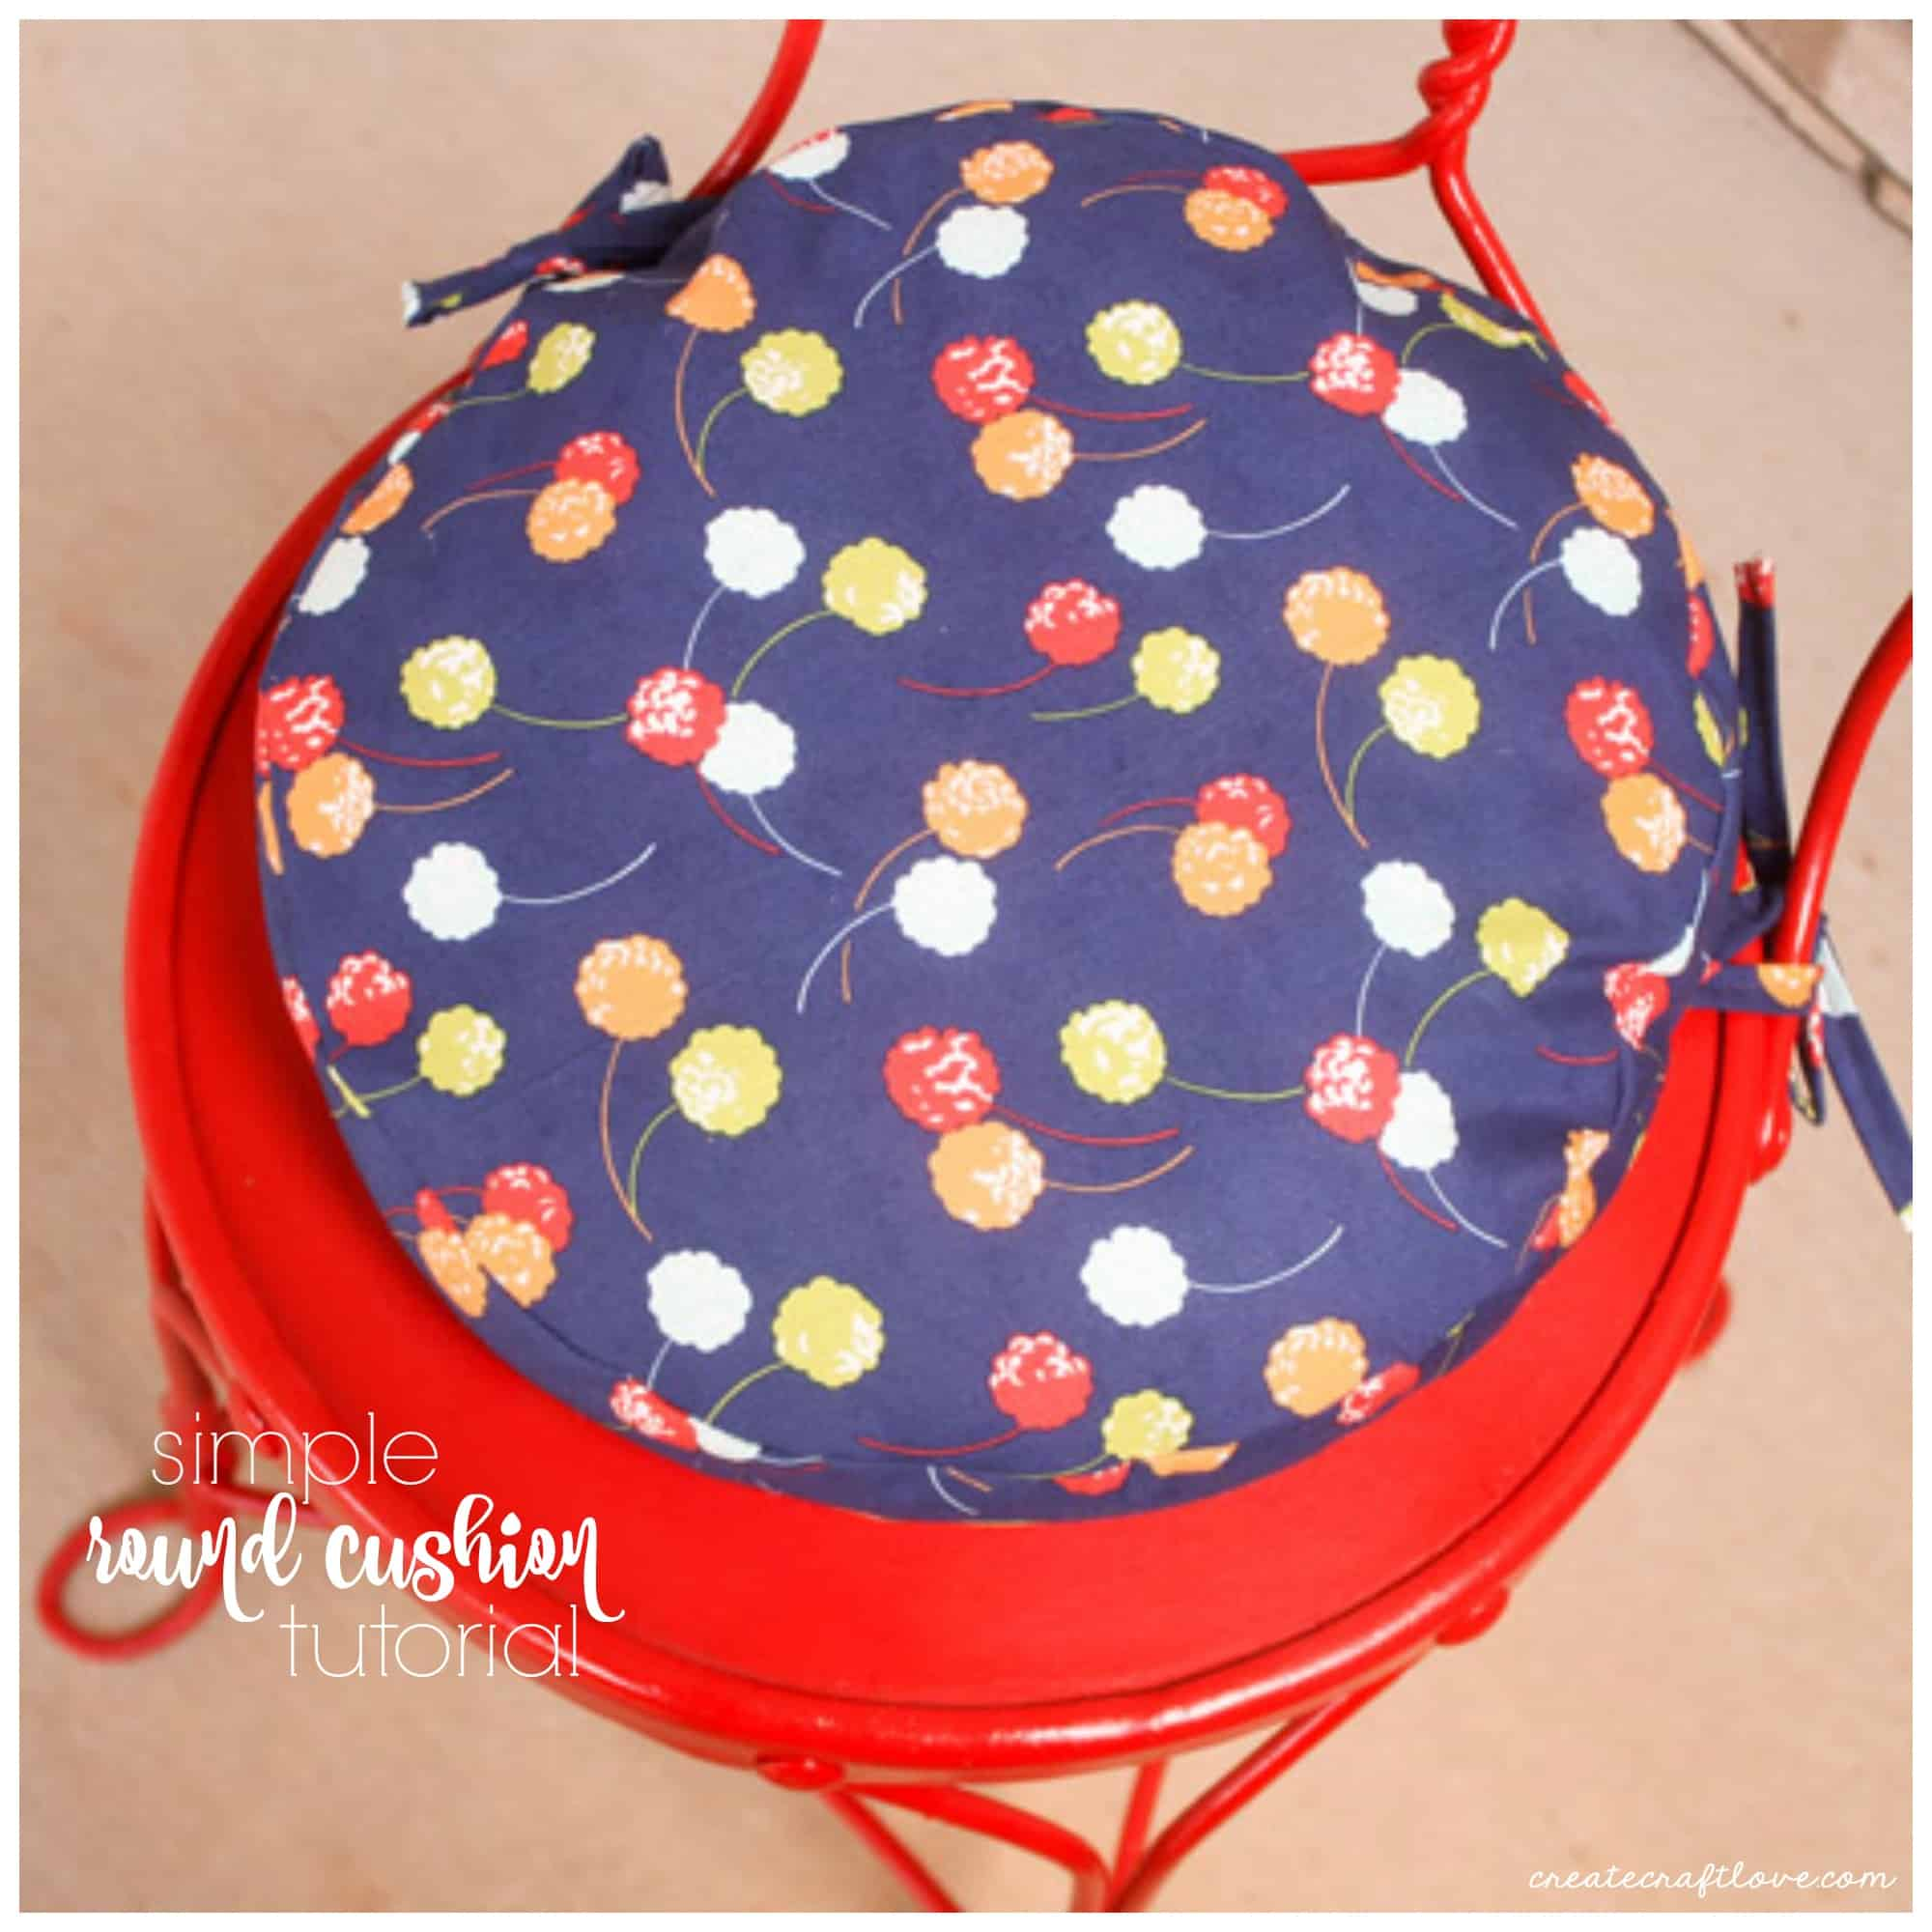 Handmade Round Cushions Simple round cushion tutorial